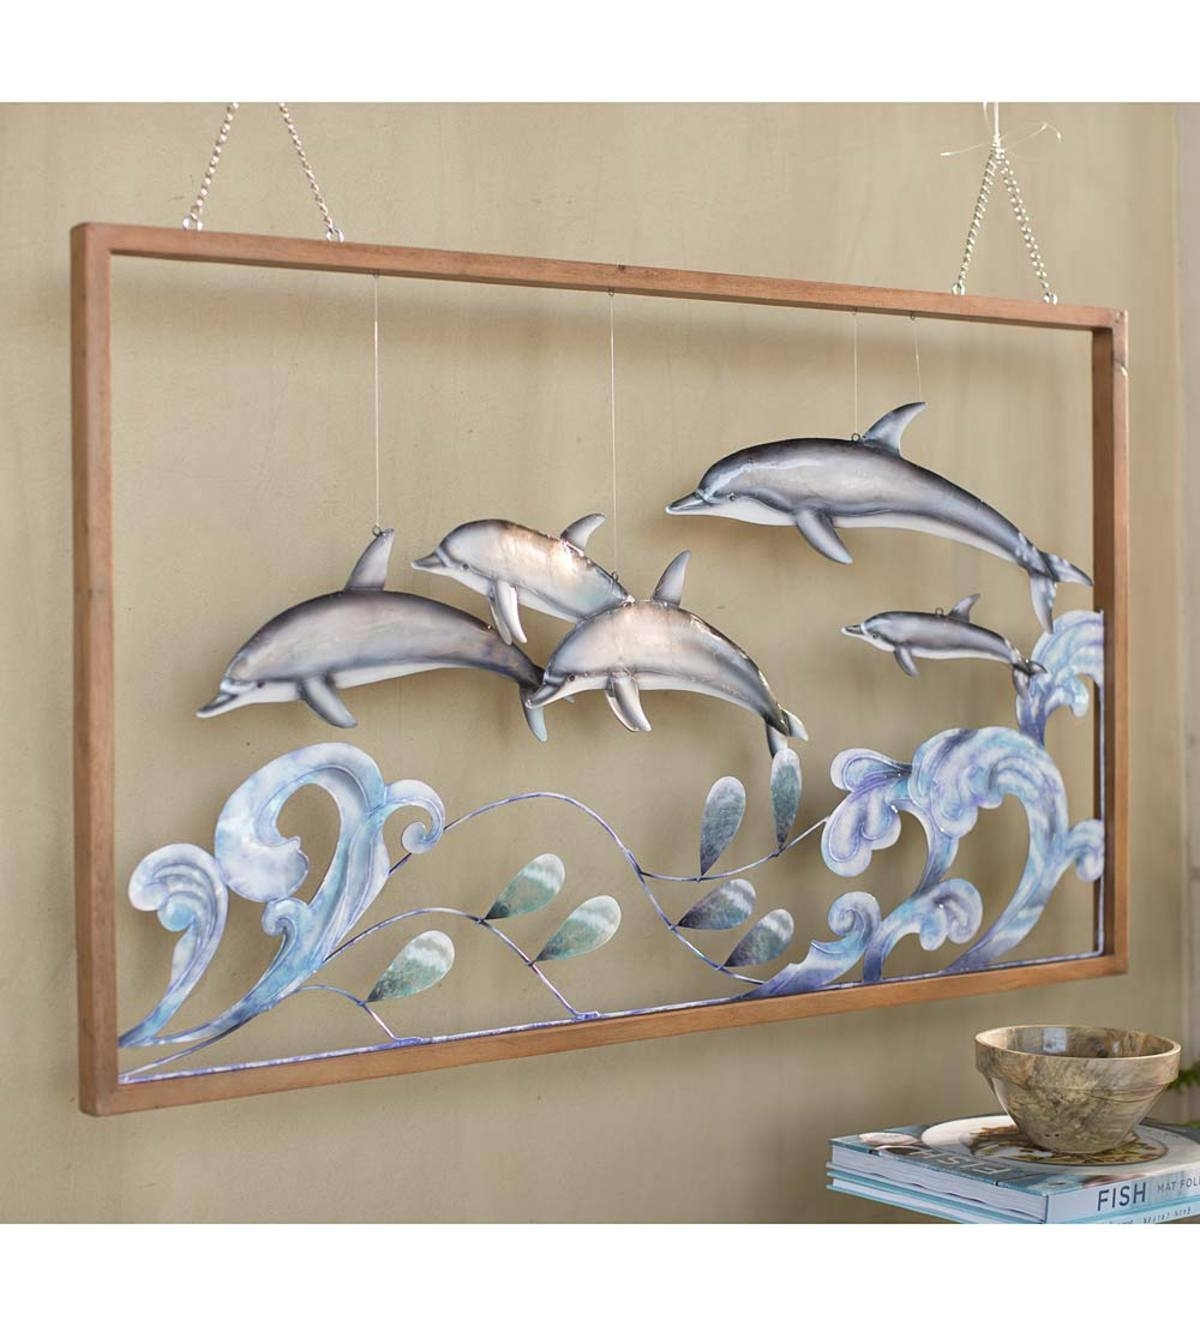 3 D Metal Dolphin Wall Art | Top Rated For The Home | New & Best Within Newest 3 Dimensional Wall Art (View 5 of 20)